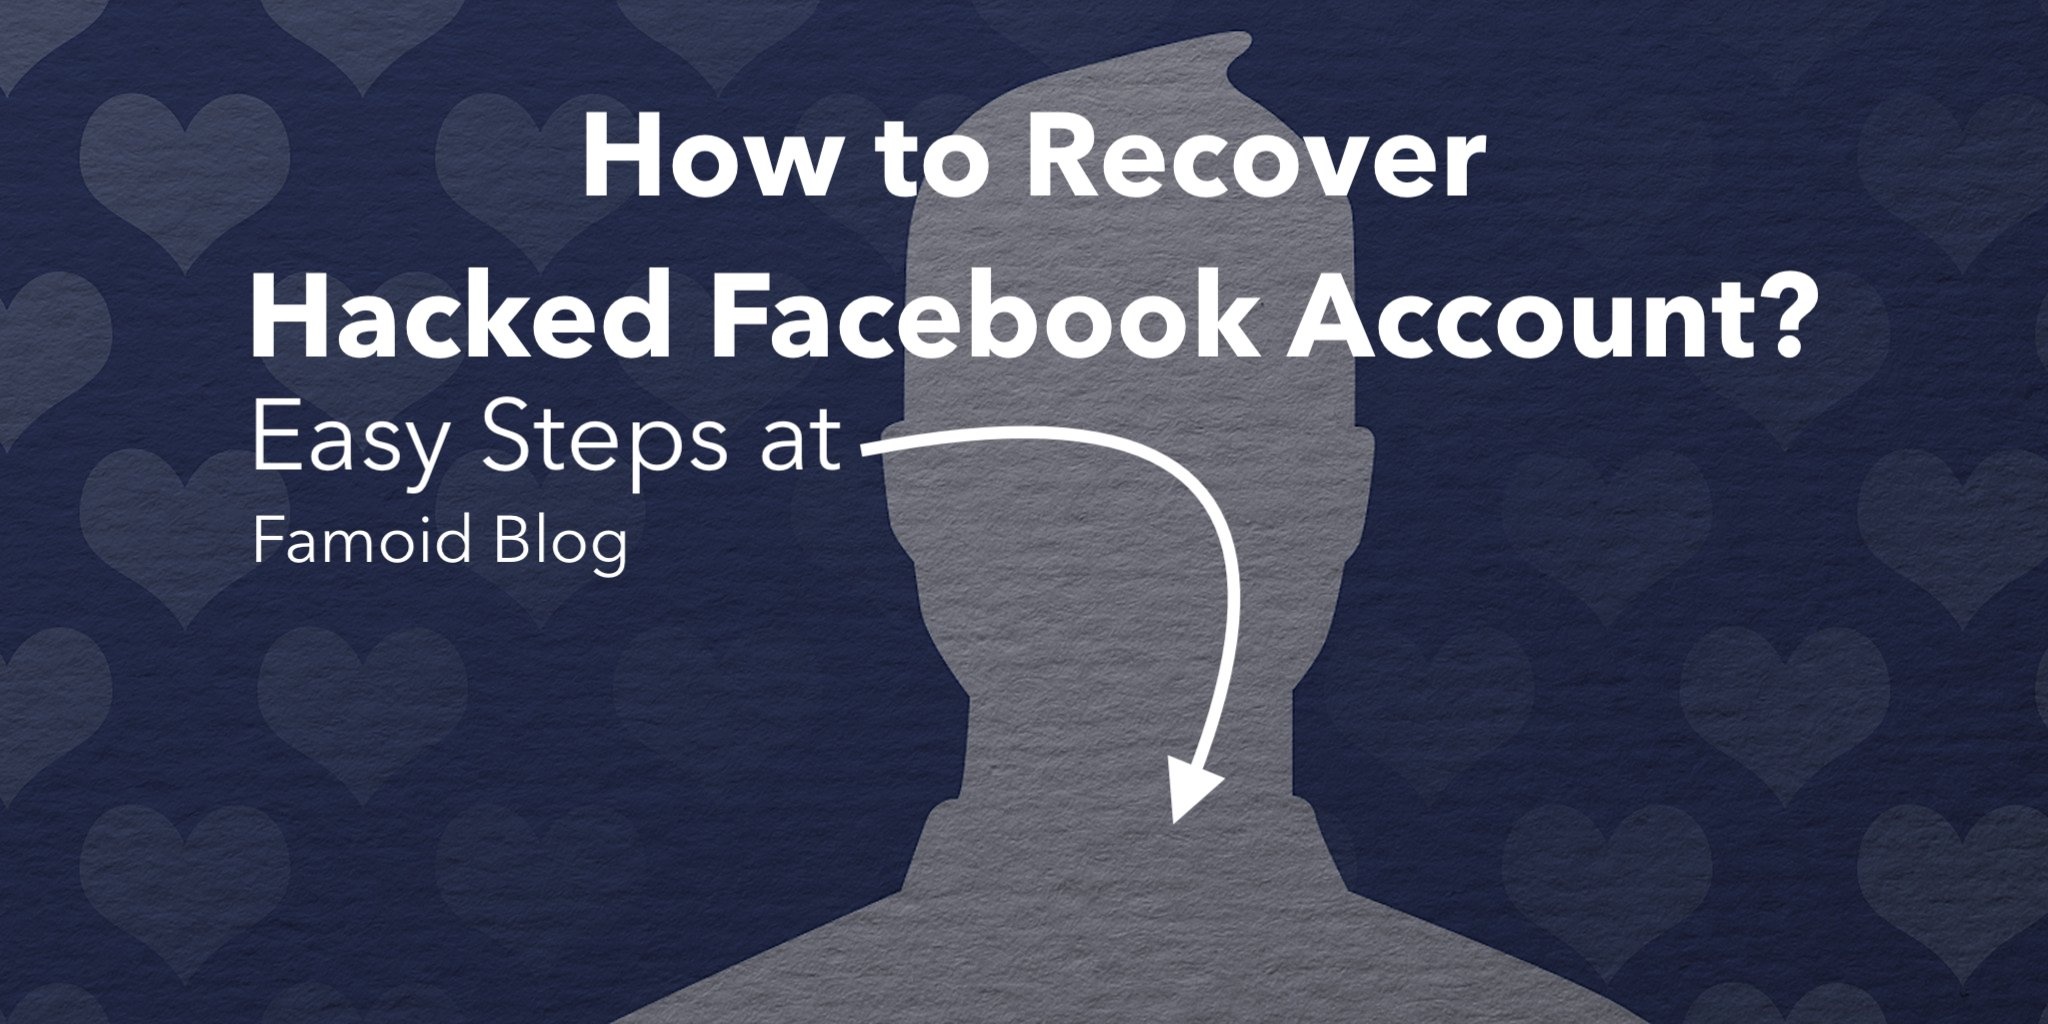 How To Recover Hacked Facebook Account in 2019? - [Updated]